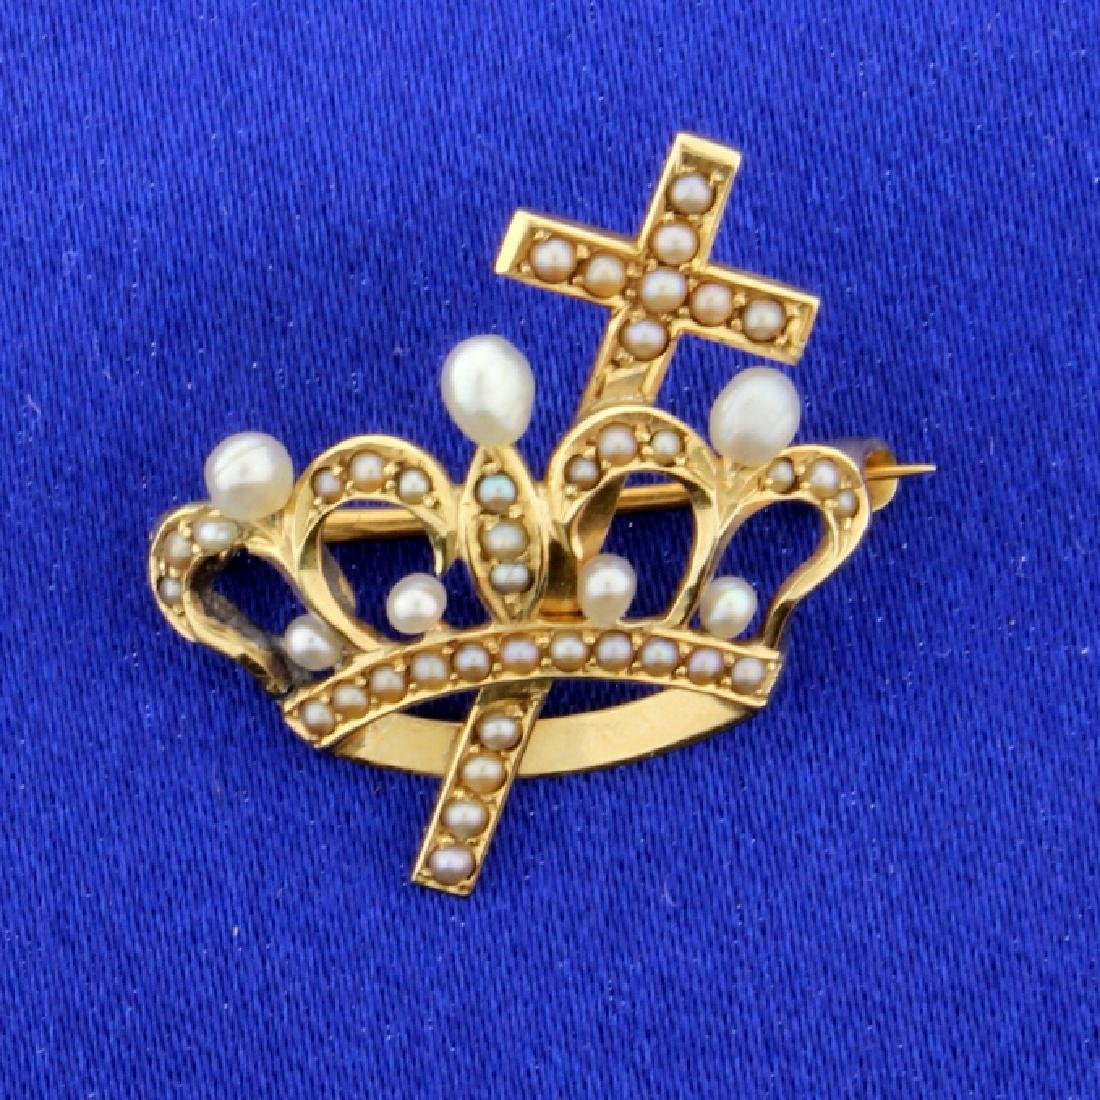 Vintage Crown/Cross Pin